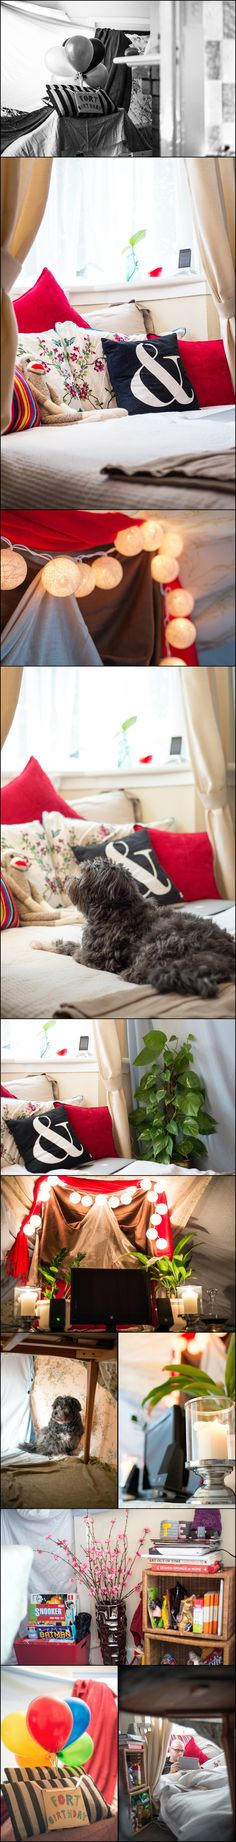 How to build a blanket fort for two very silly grown-ups (and one puppy dog)!